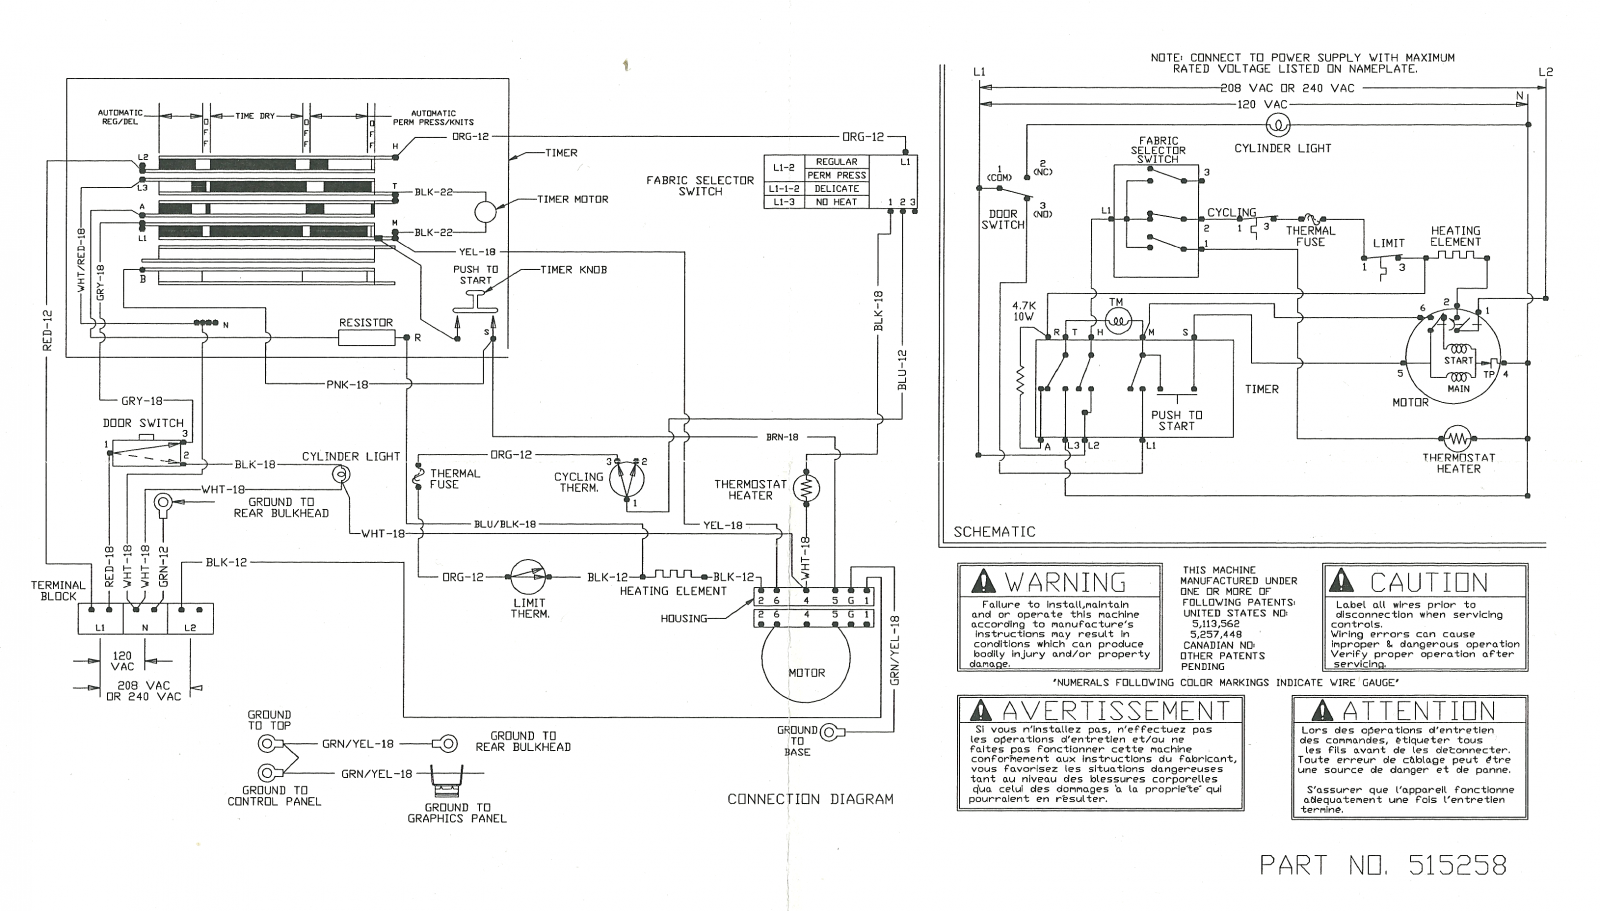 ADE3SRGS173TW01 Schematic